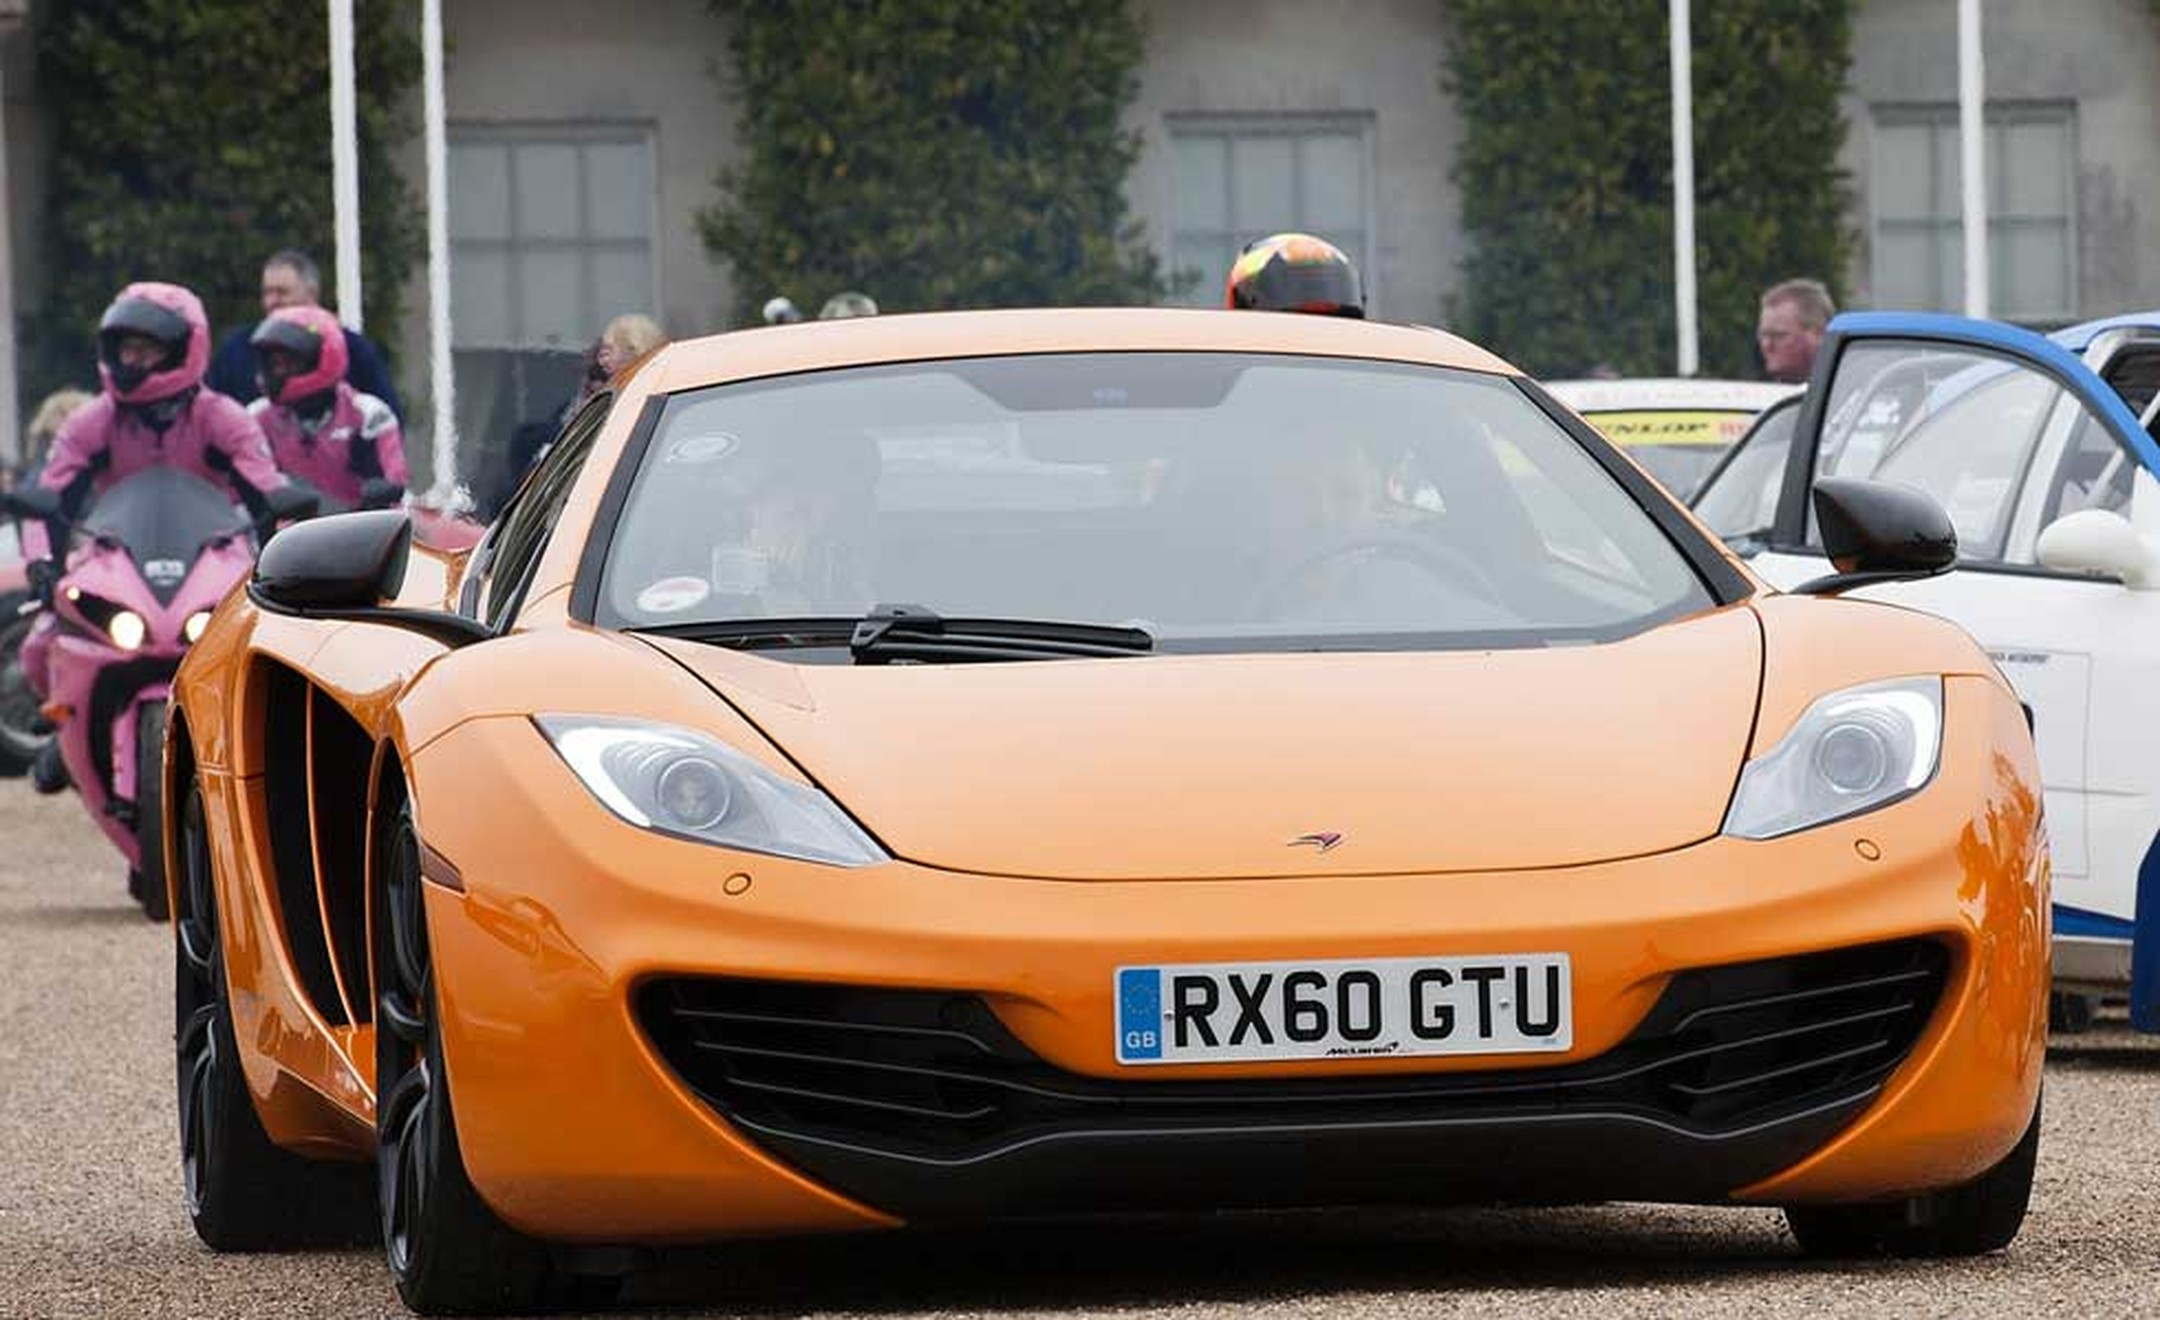 The new McClaren MP4 supercar at the Goodwood preview this year.